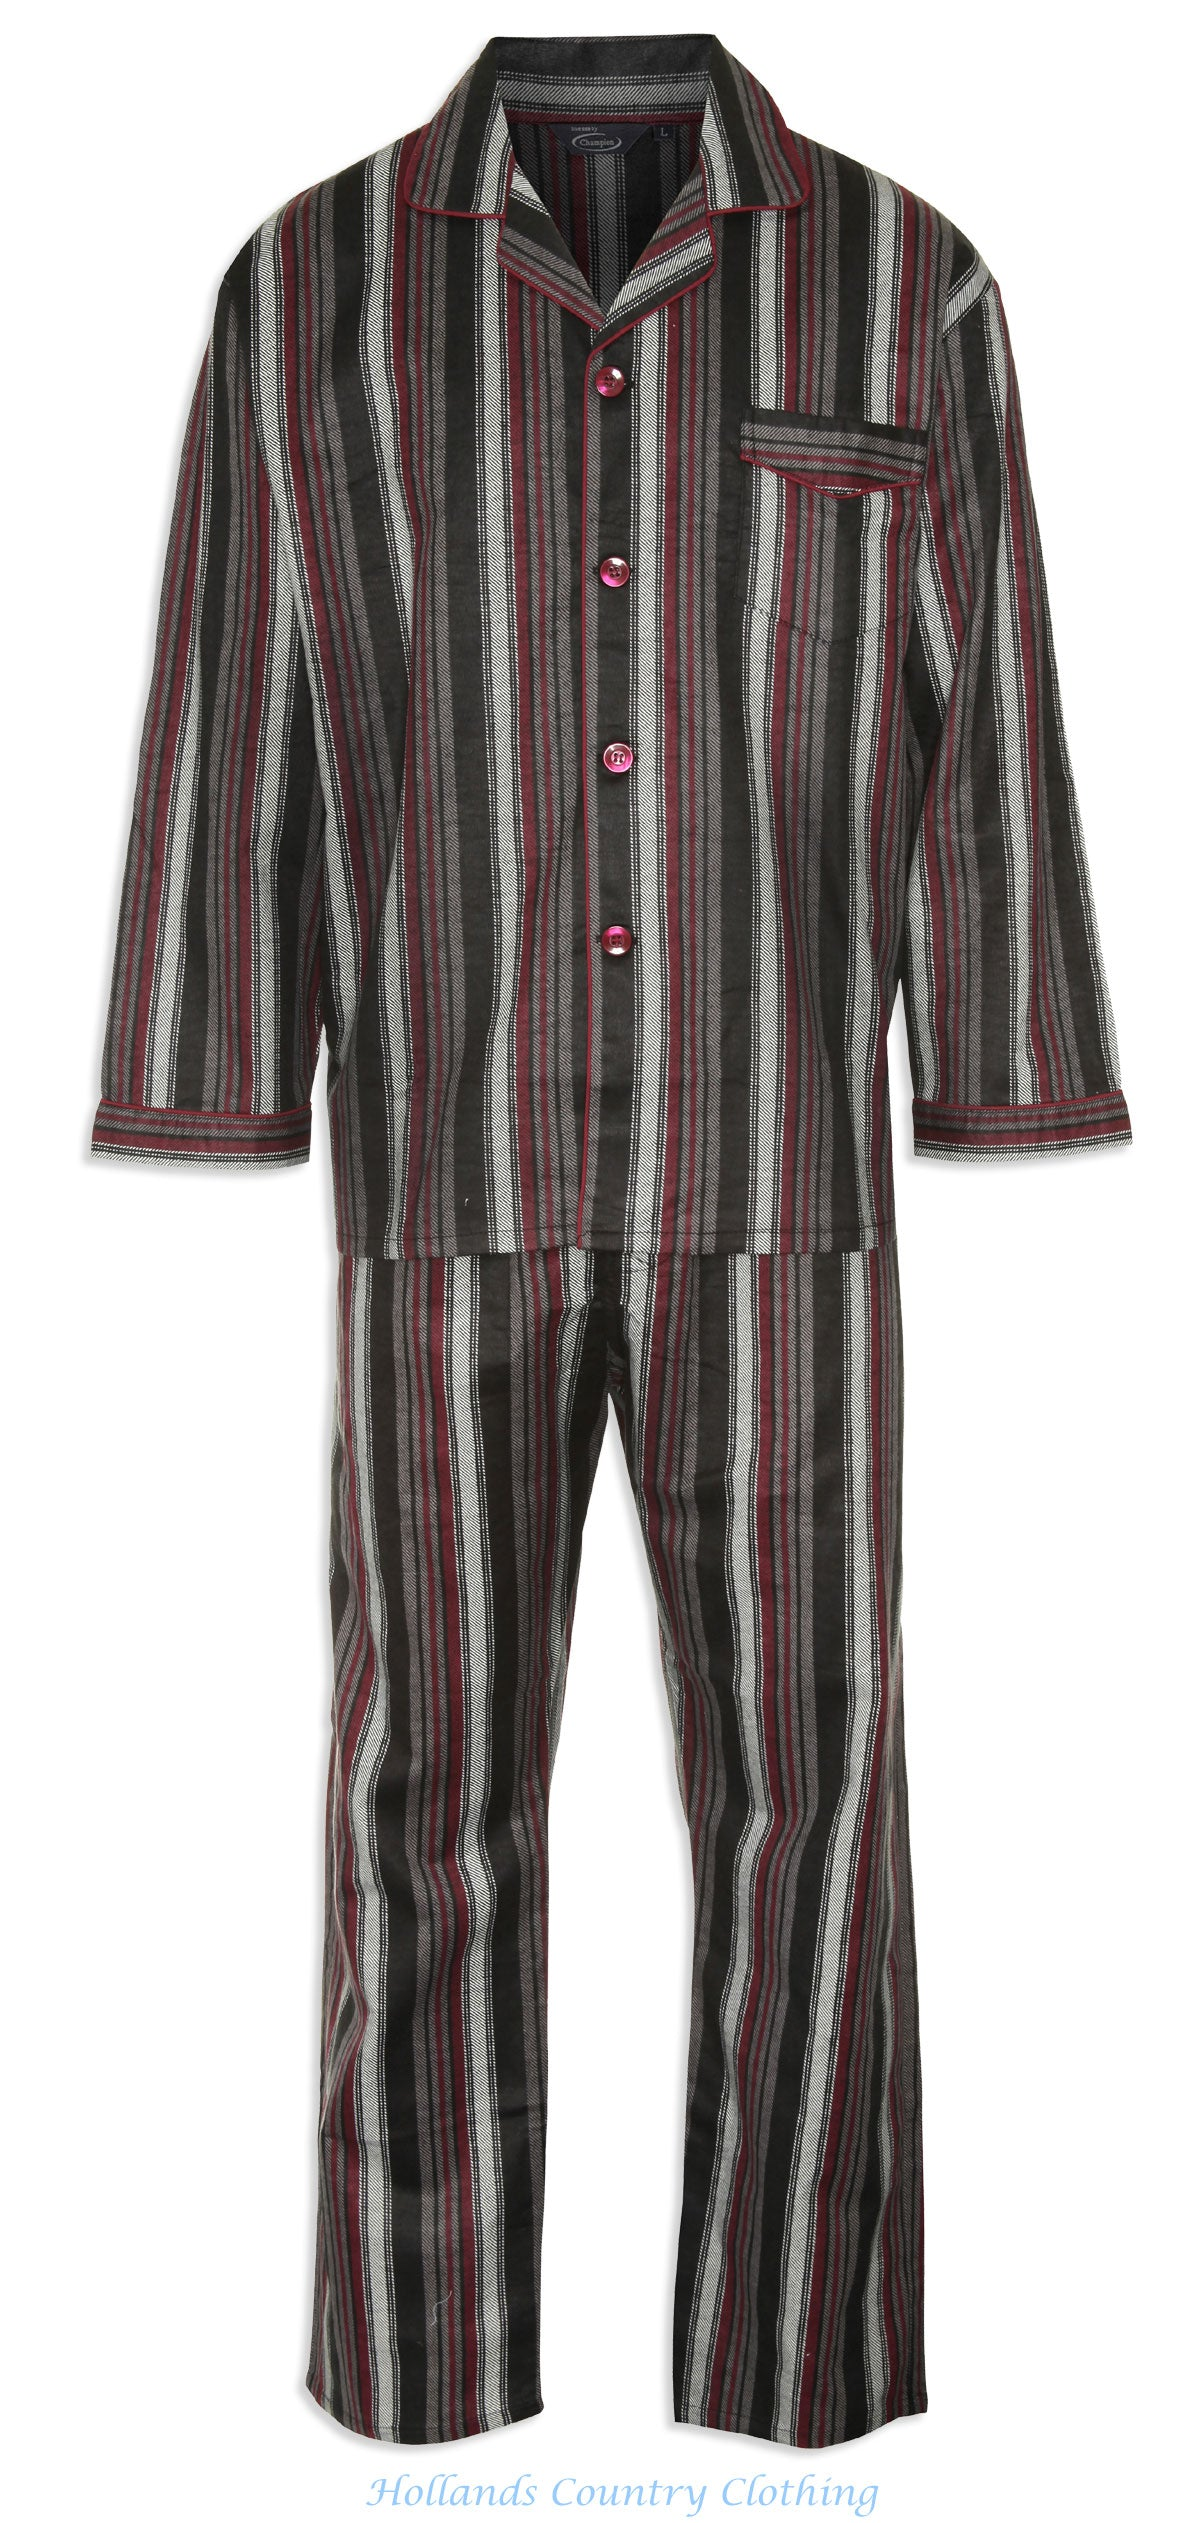 Champion Kingston Striped Pyjamas 100% Cotton pair of in blue and burgundy front oen